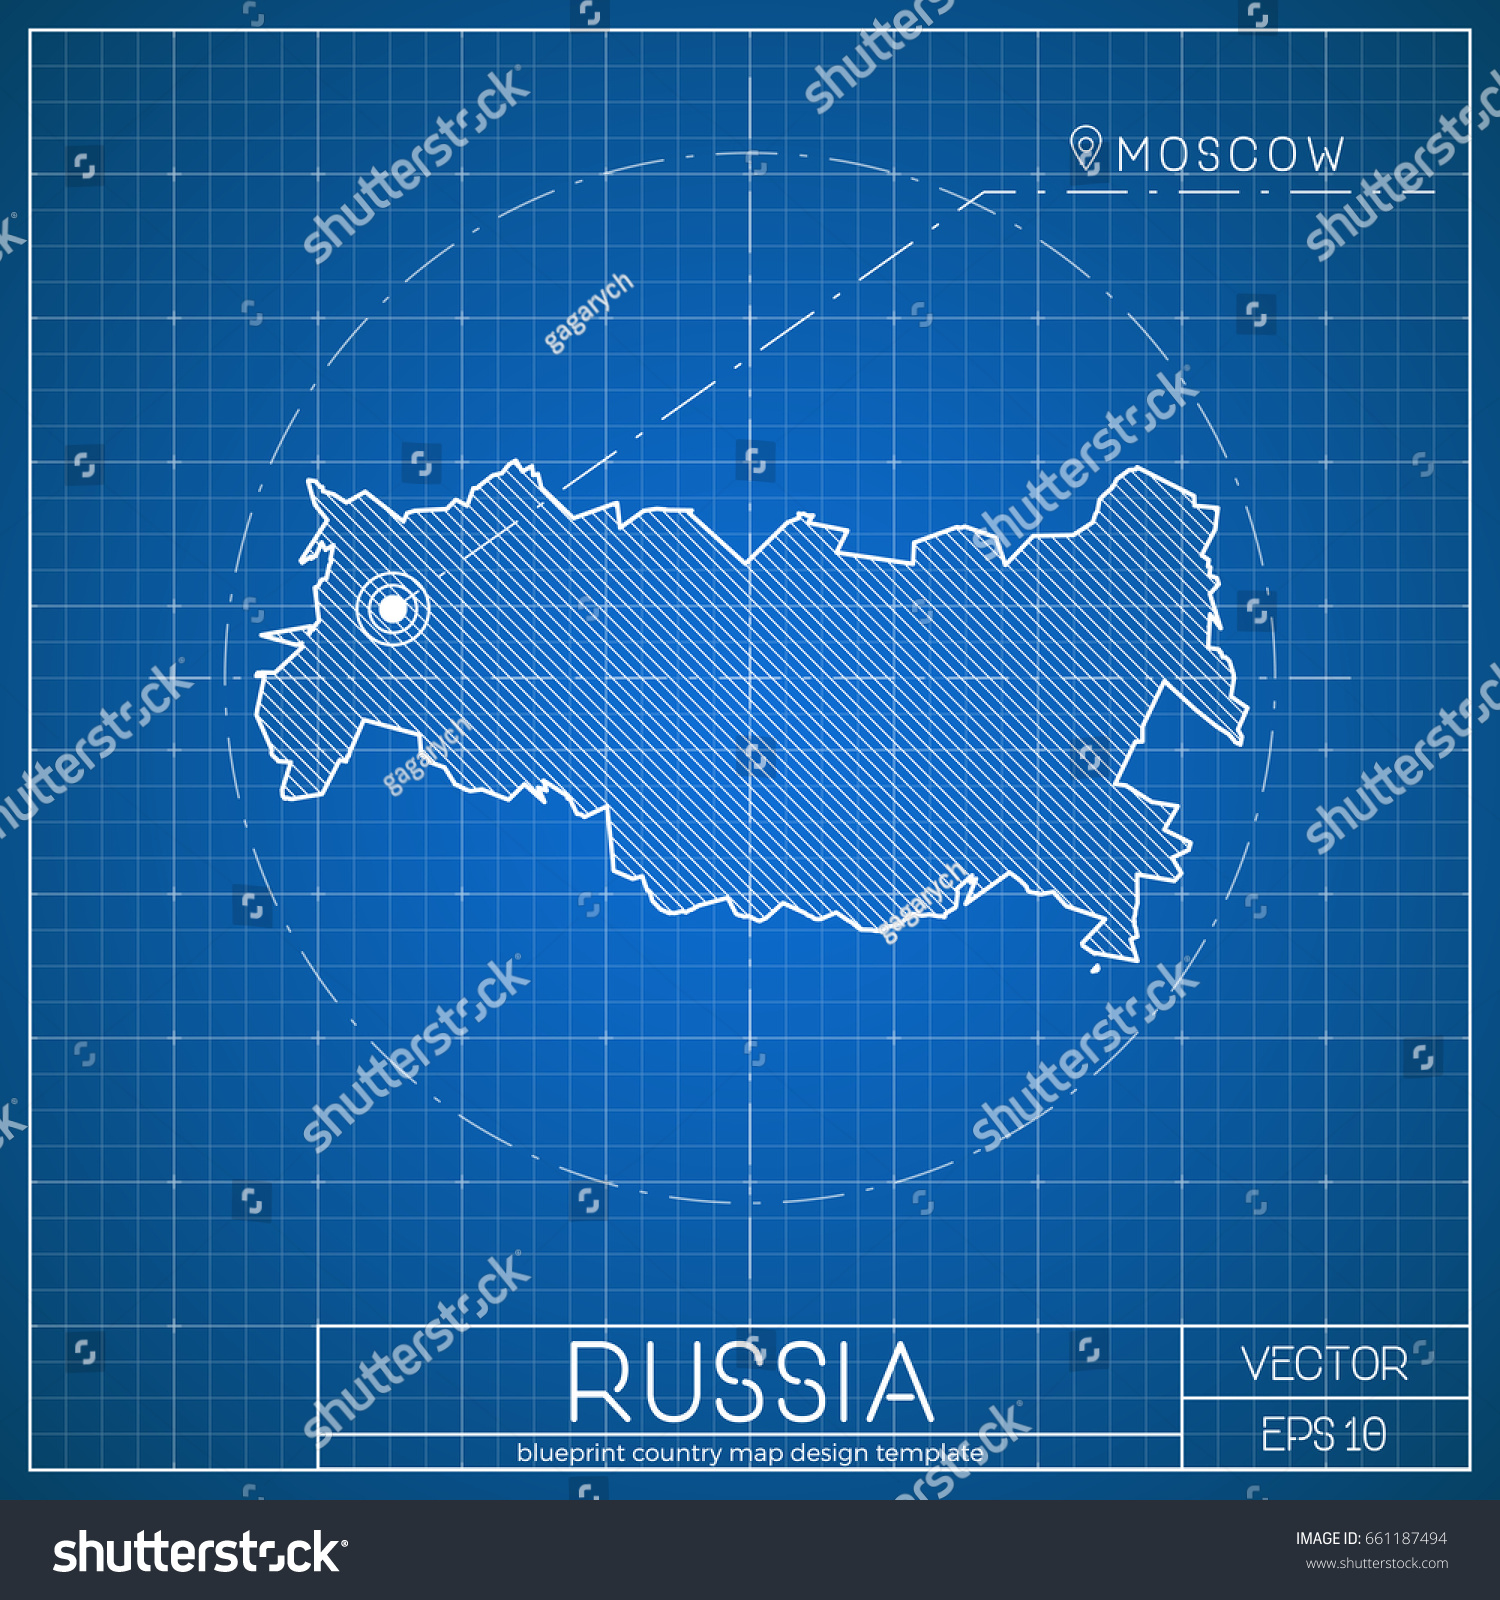 Russia blueprint map template capital city vectores en stock russia blueprint map template with capital city moscow marked on blueprint russian map vector malvernweather Image collections